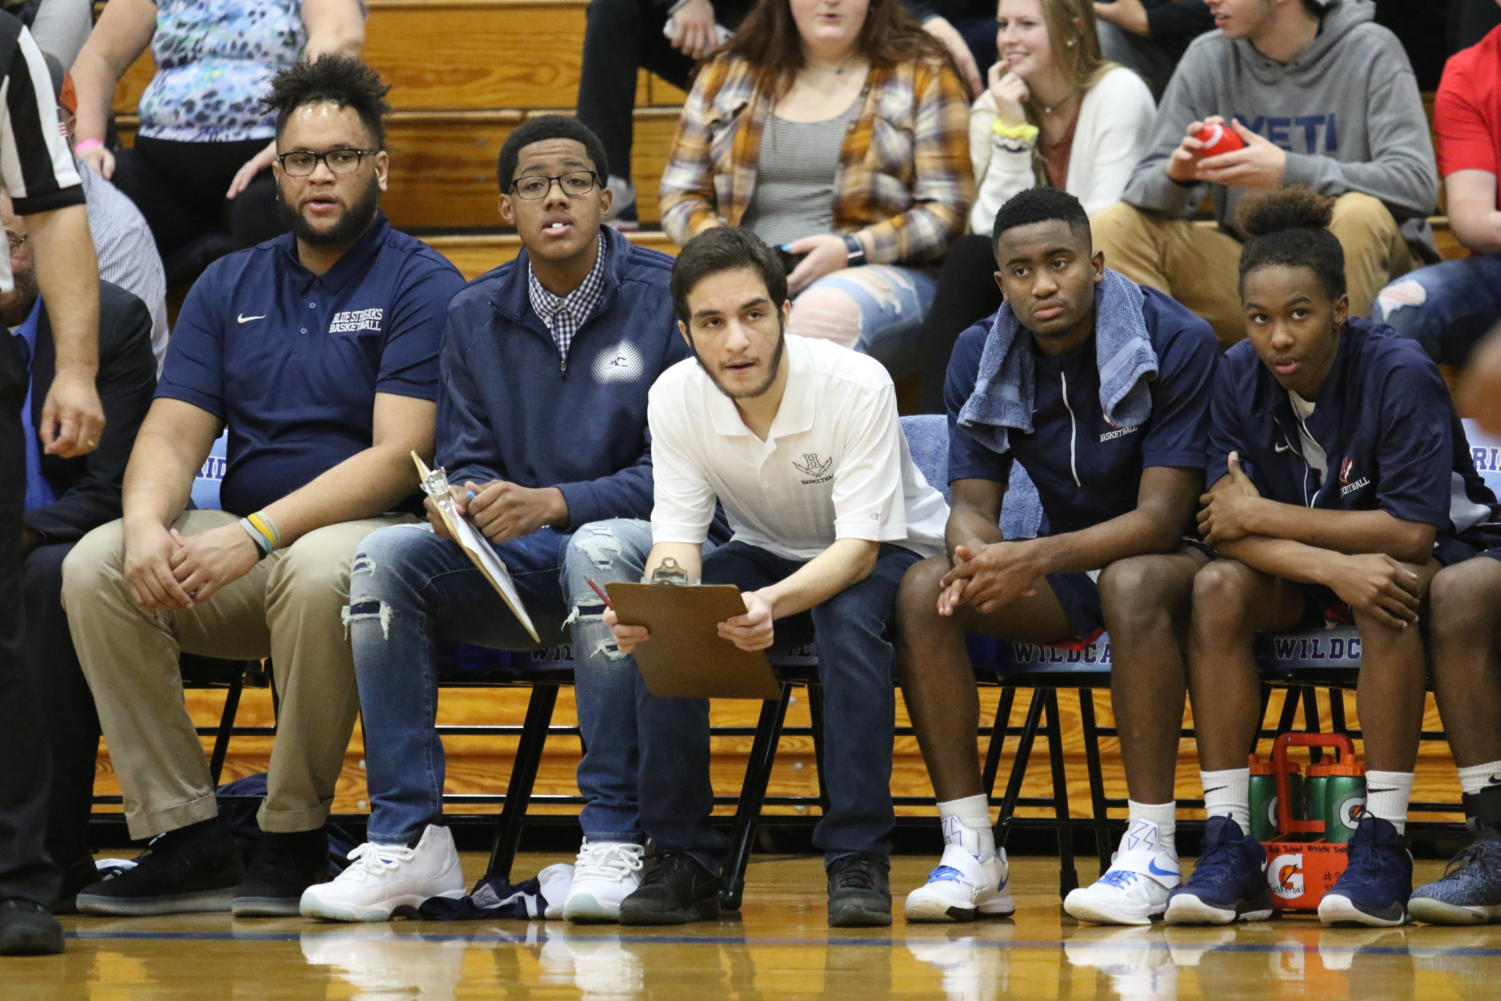 Senior Pana Muhamad (middle) watches the Streaks trail to John Handley. The Streaks lost 51-44.